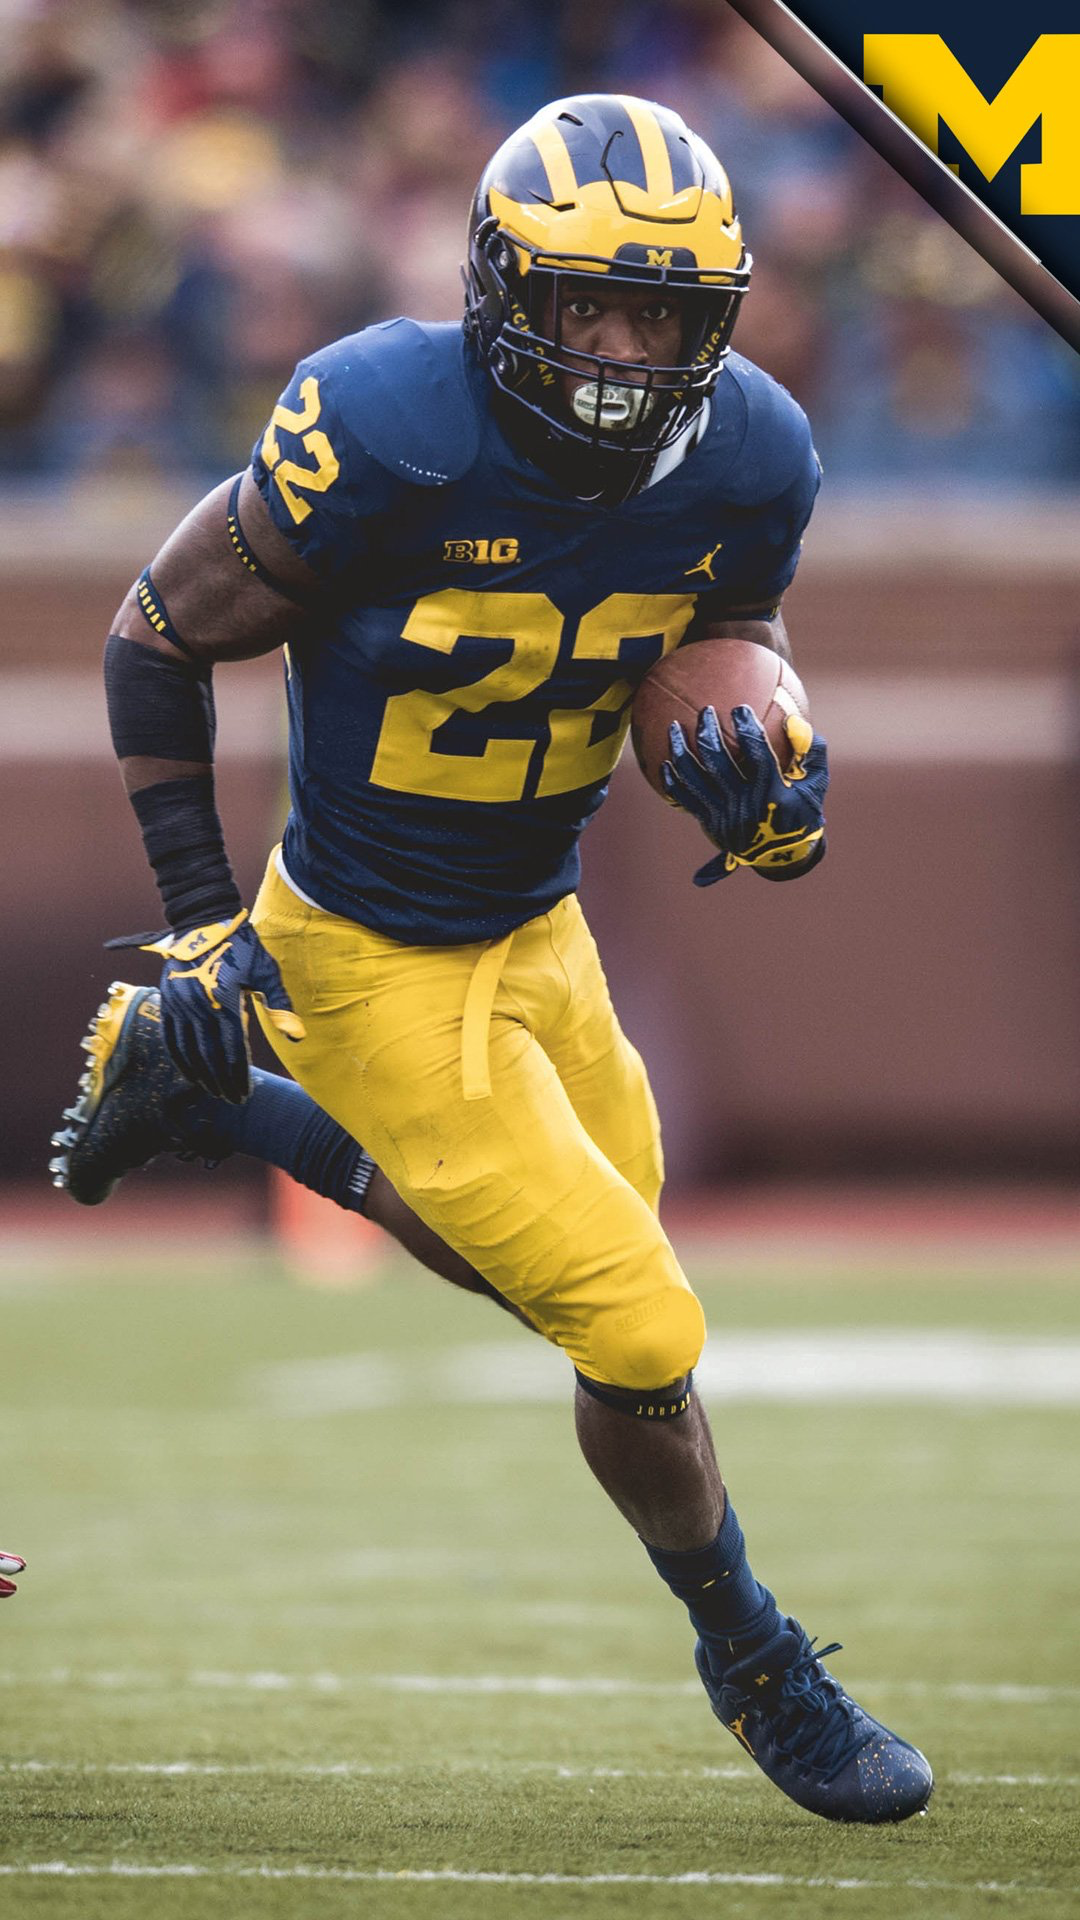 low priced 98ea4 1377f Karan Higdon | Michigan Football | Michigan wolverines ...